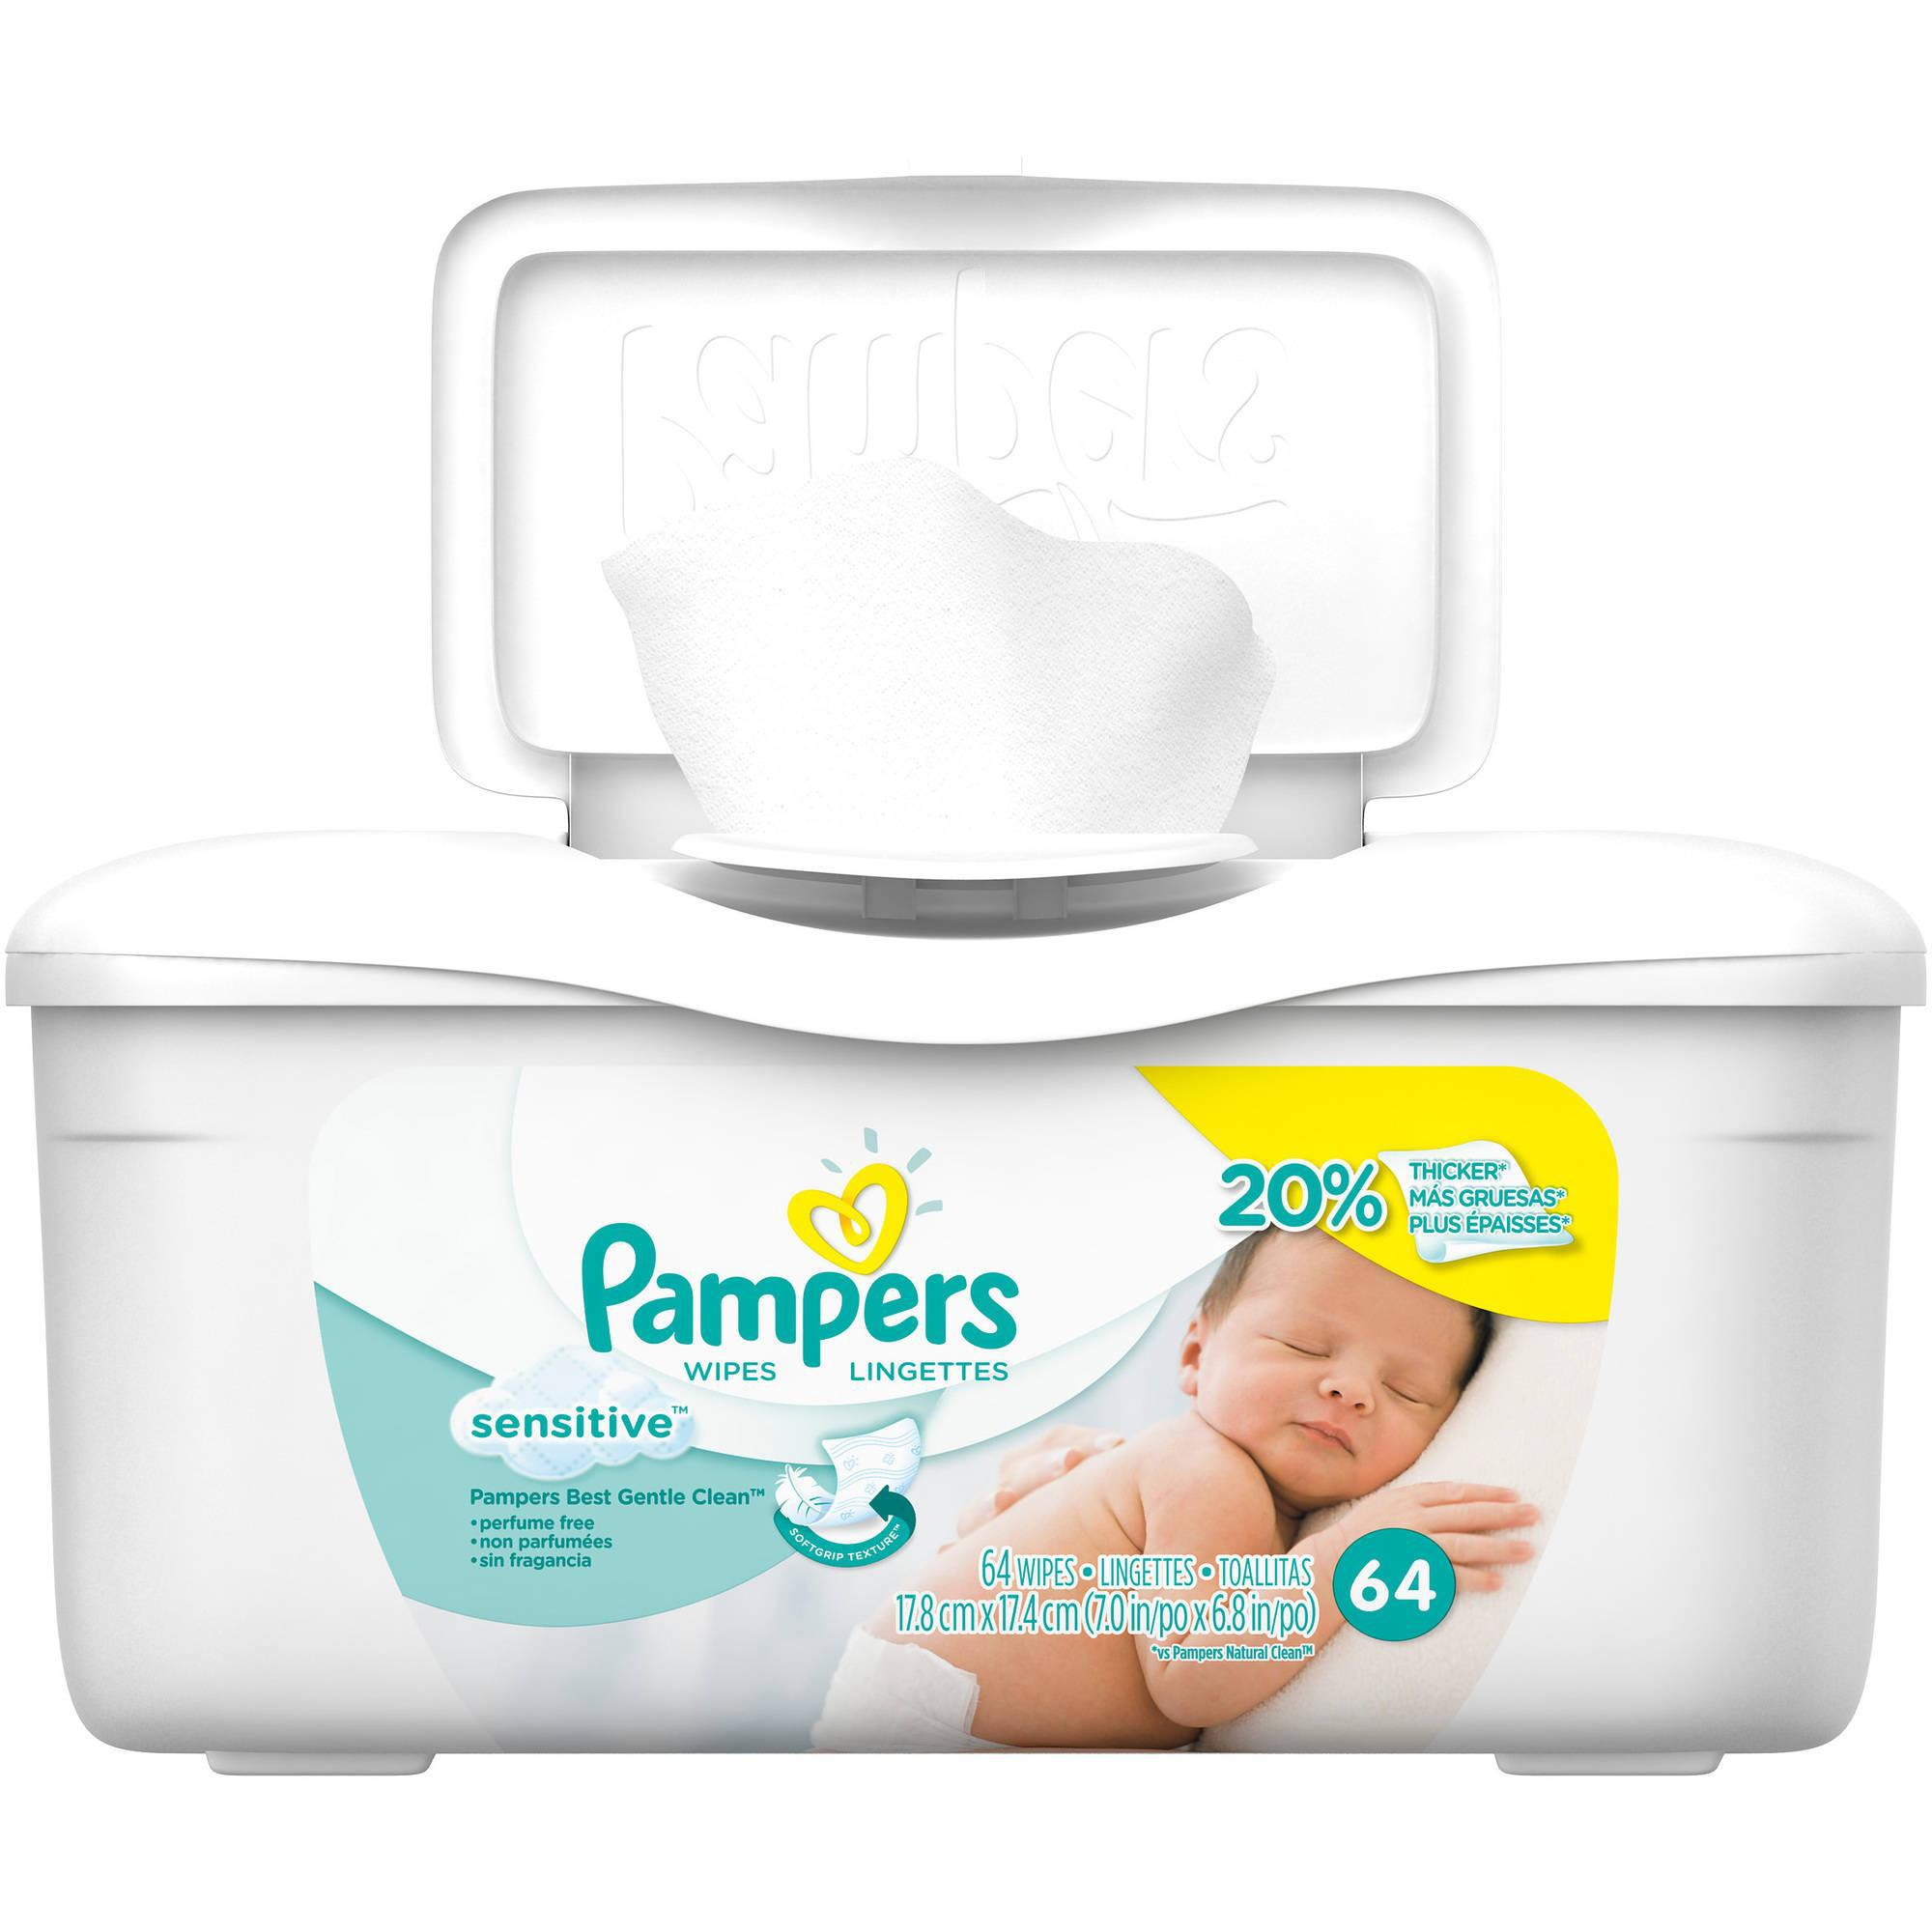 Pampers Sensitive Thick Care Baby Wipes Reviews In Baby